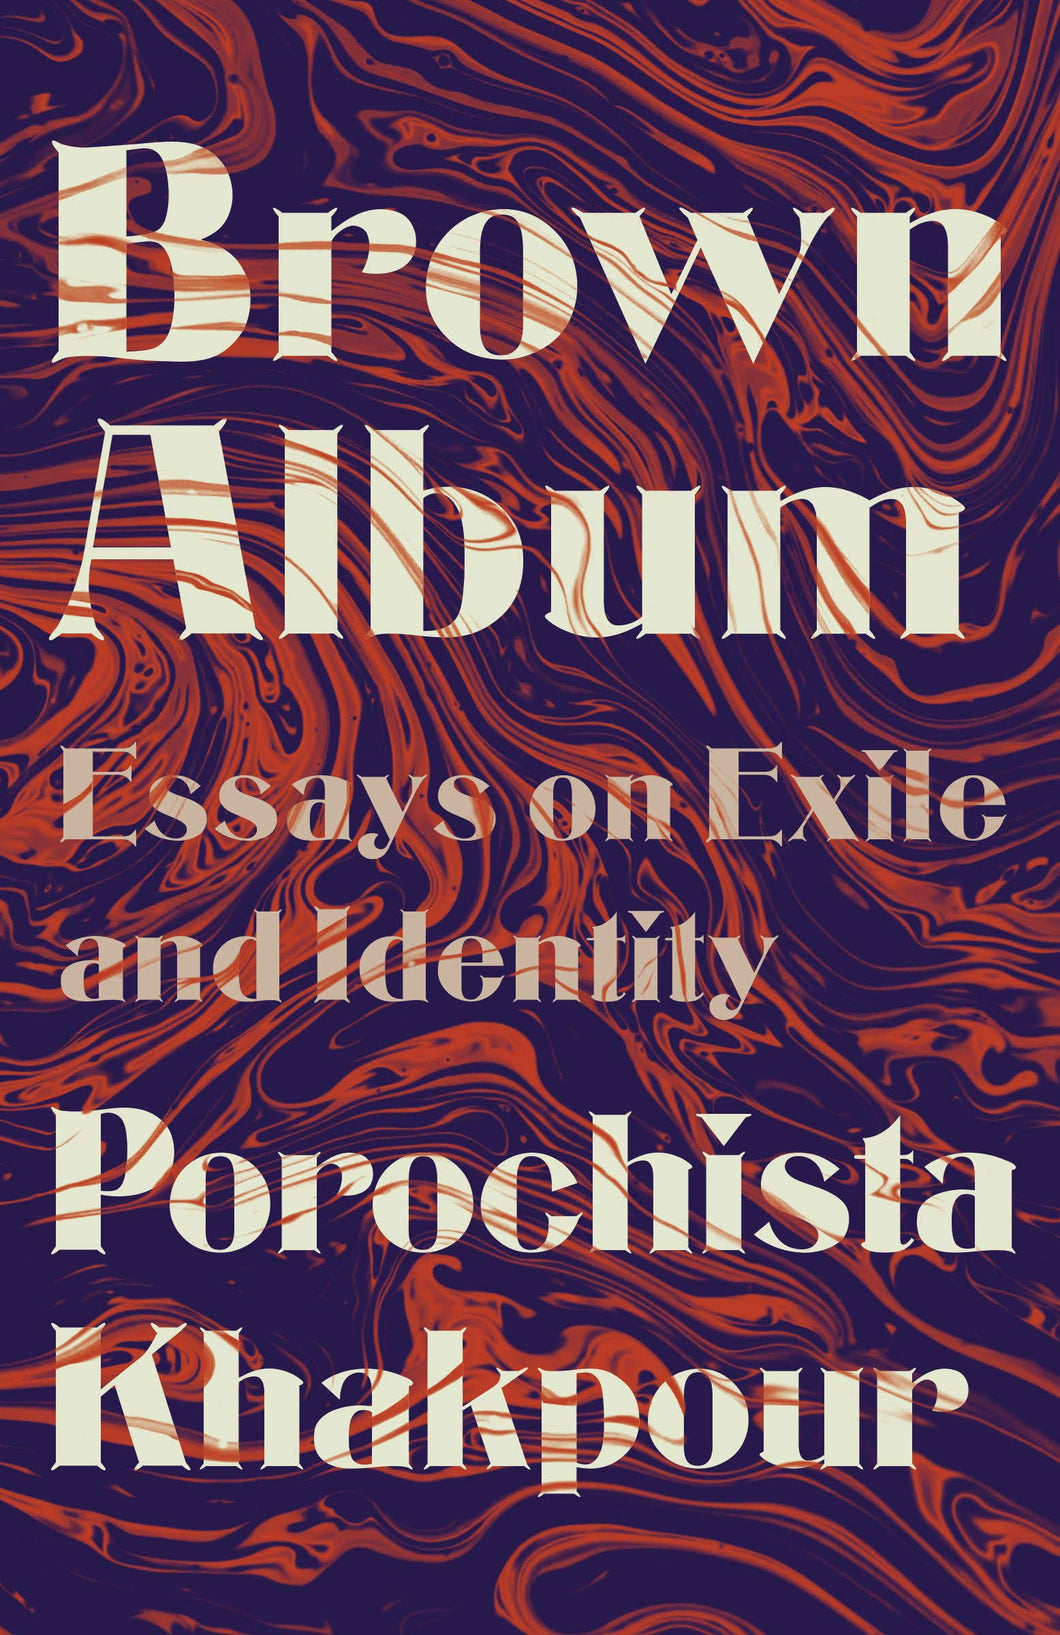 Brown Album: Essays on Exile and Identity by Porochista Khakpour